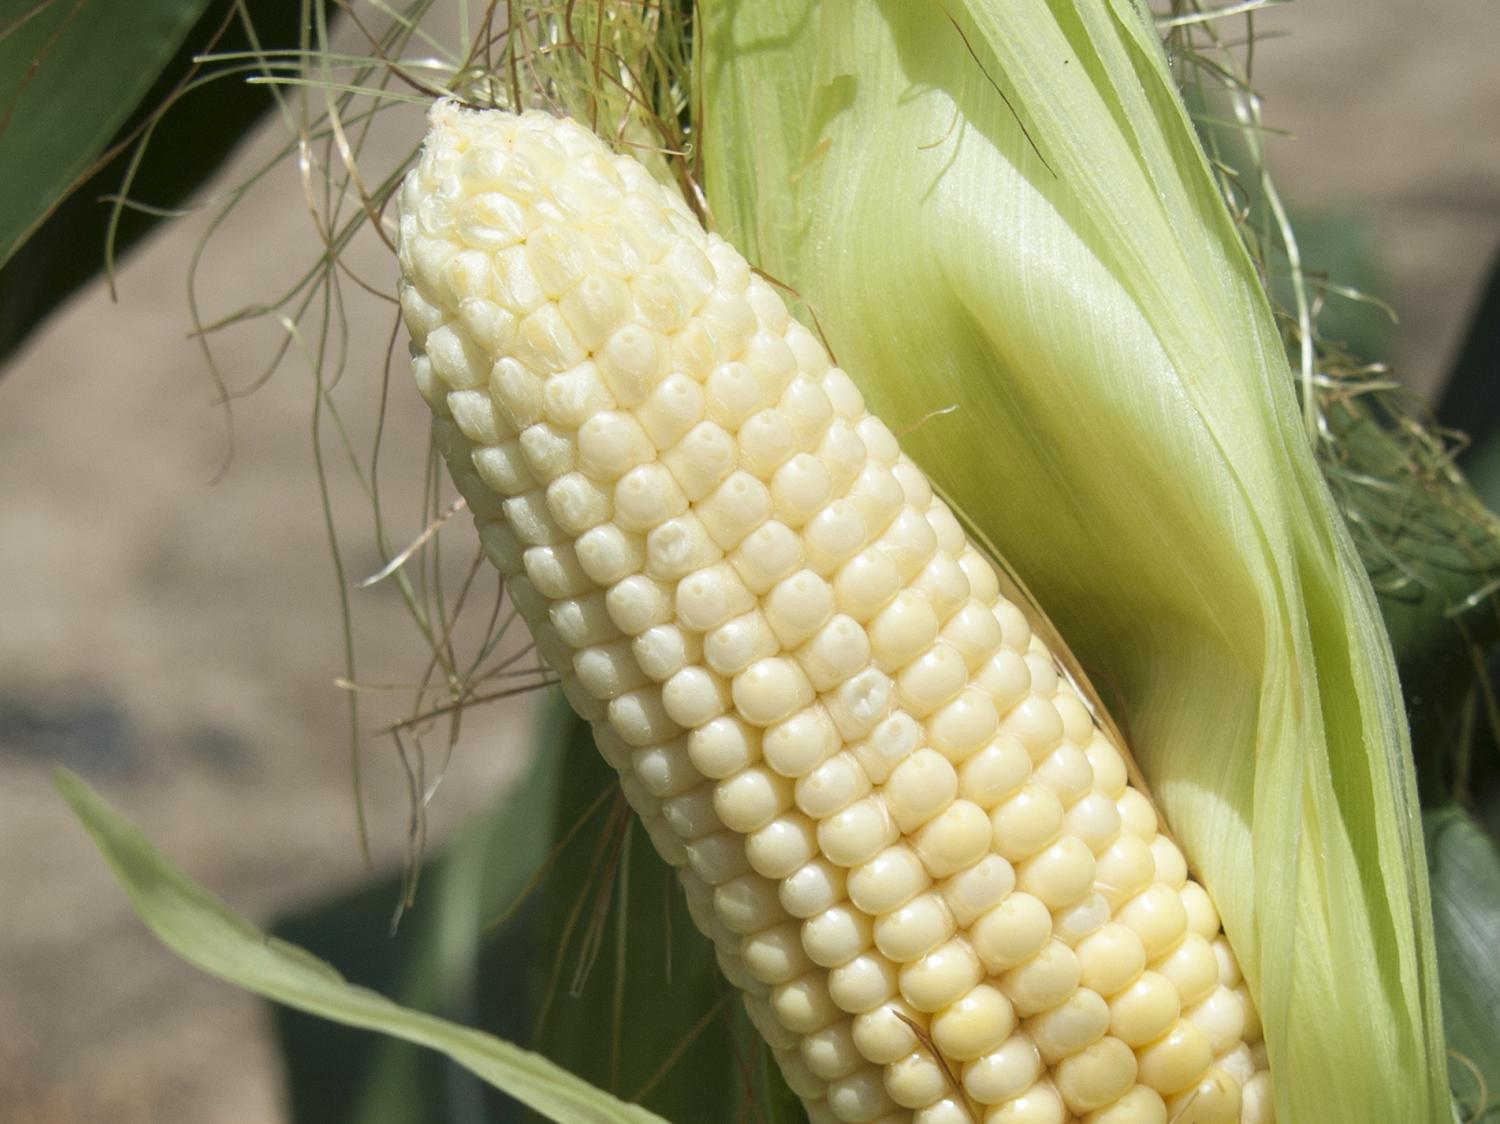 A variety of stresses, including saturated soils, can cause kernels at the tips of corn ears not to fill out. This ear was photographed July 1, 2014, at Mississippi State University's R.R. Foil Plant Science Research Center in Starkville, Mississippi. (Photo by MSU Ag Communications/Kat Lawrence)